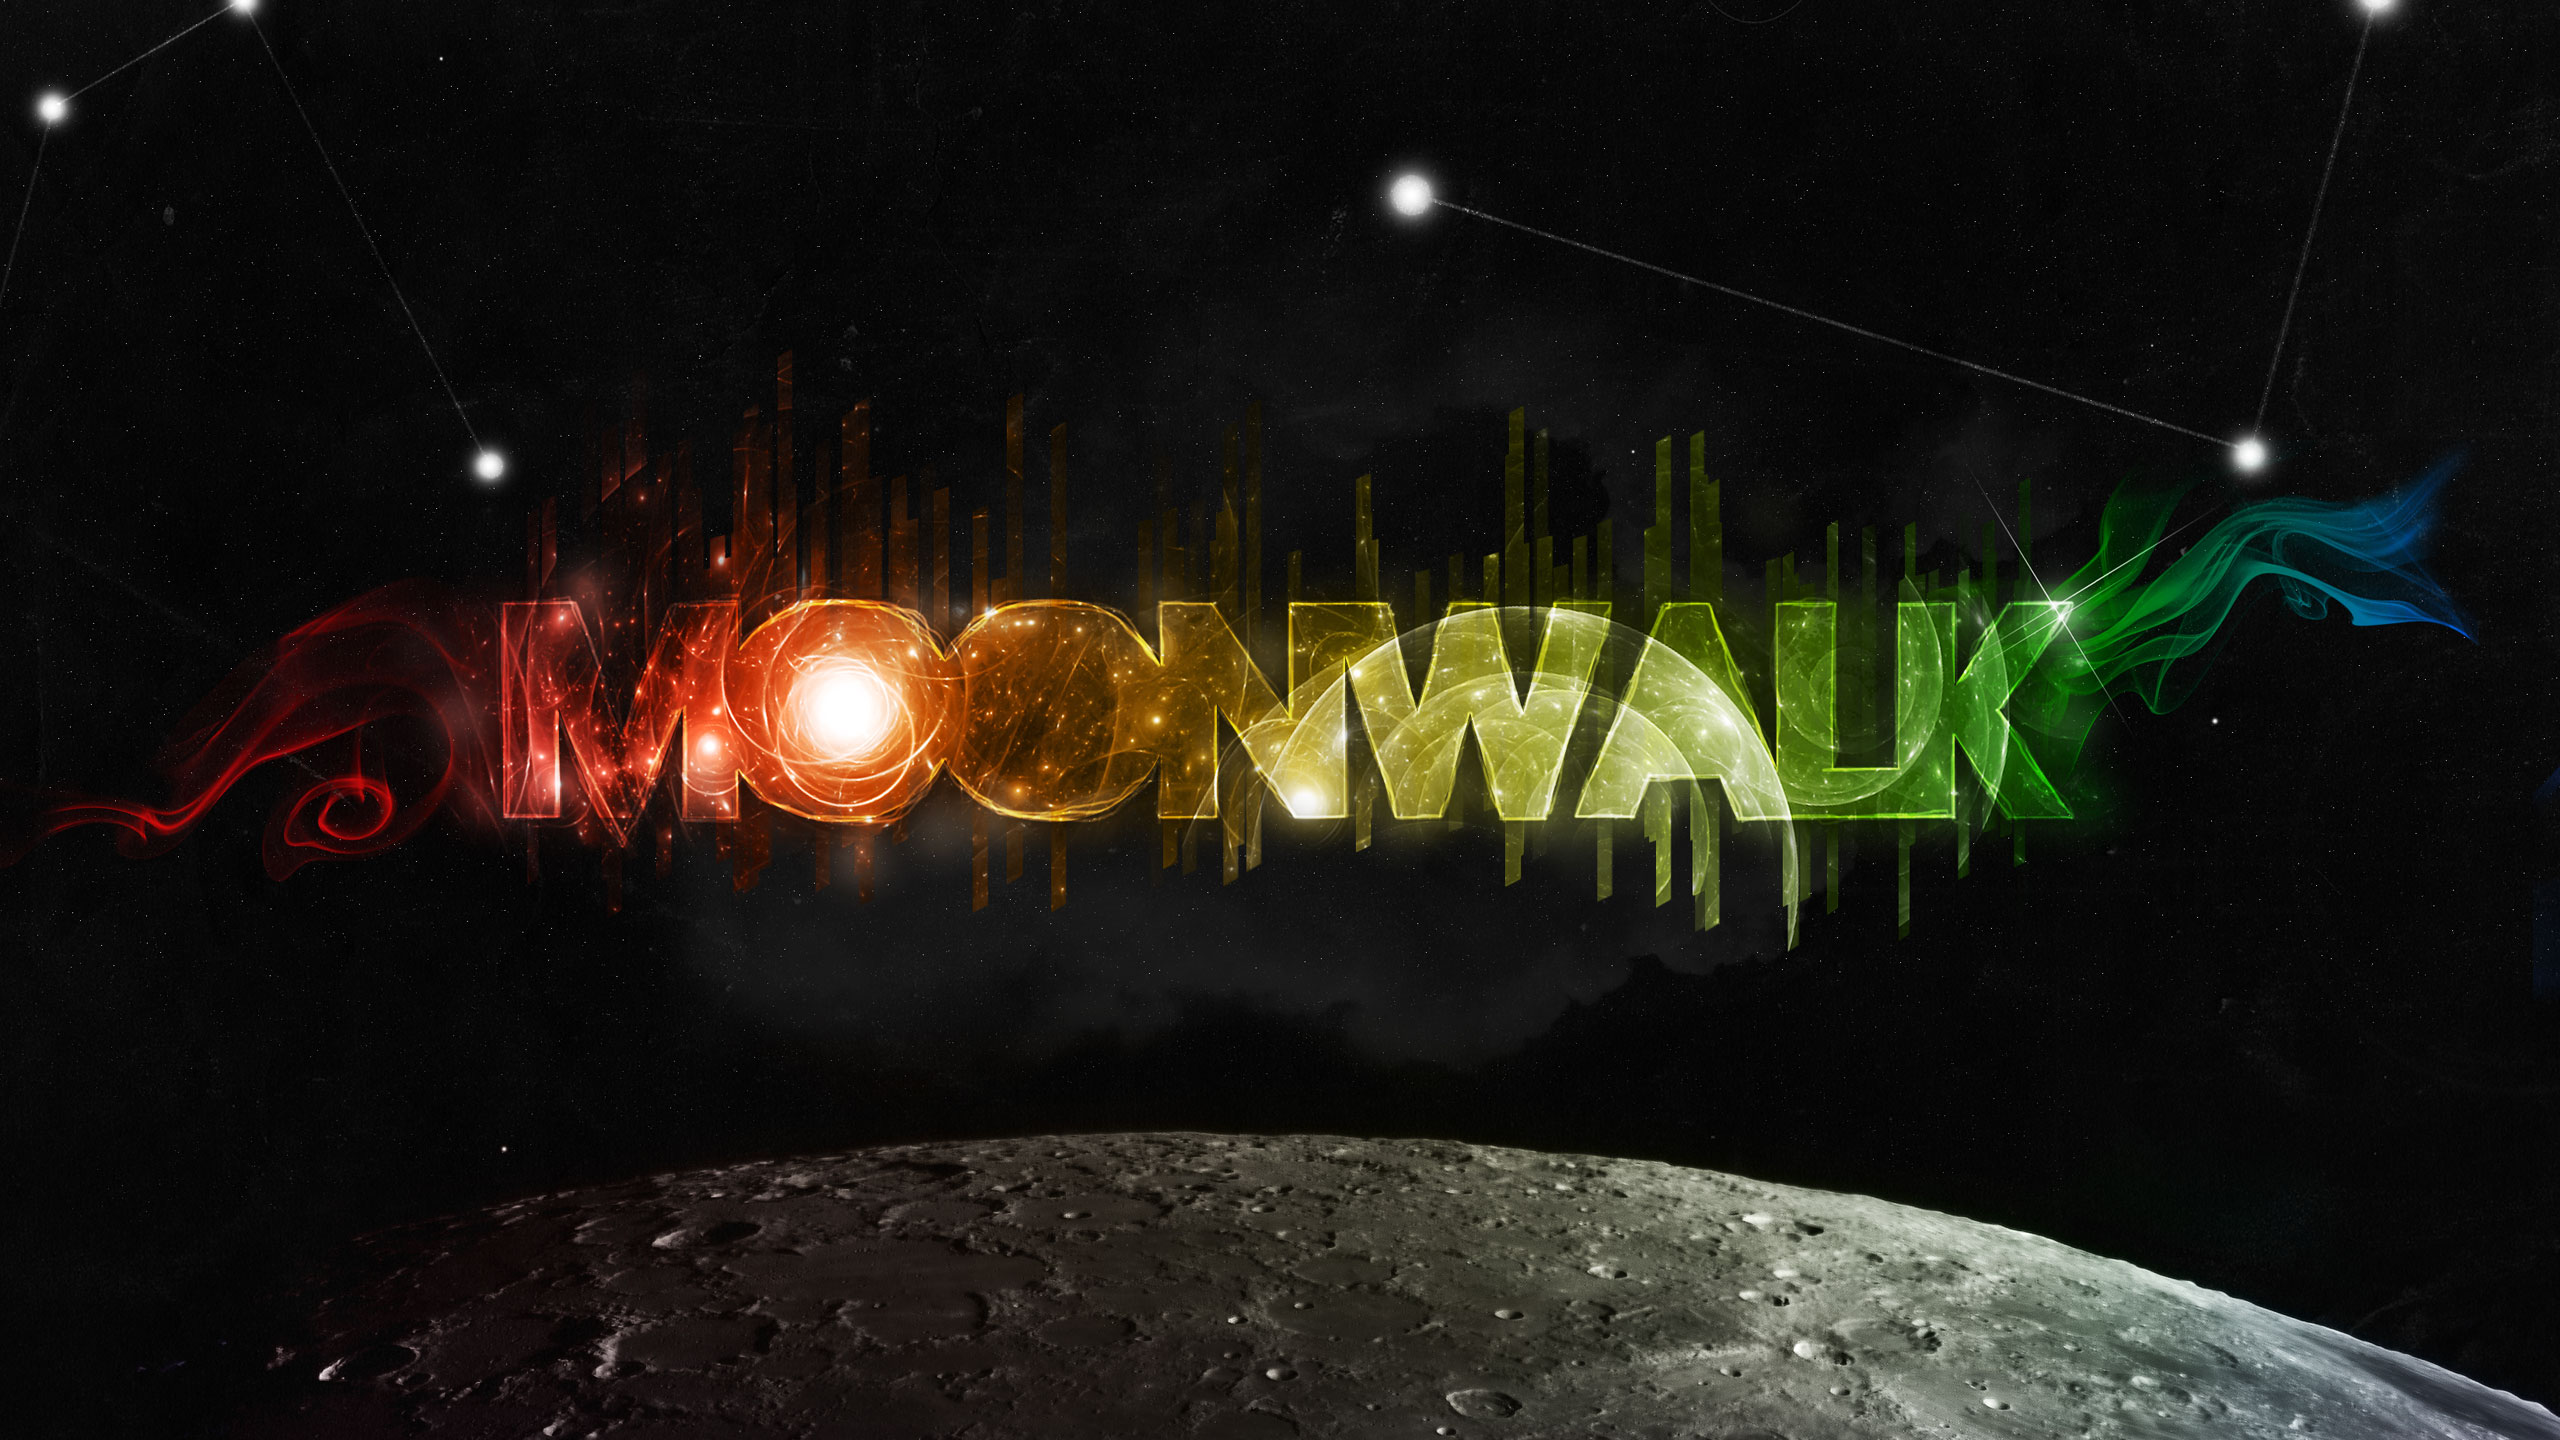 Photo: Moonwalk